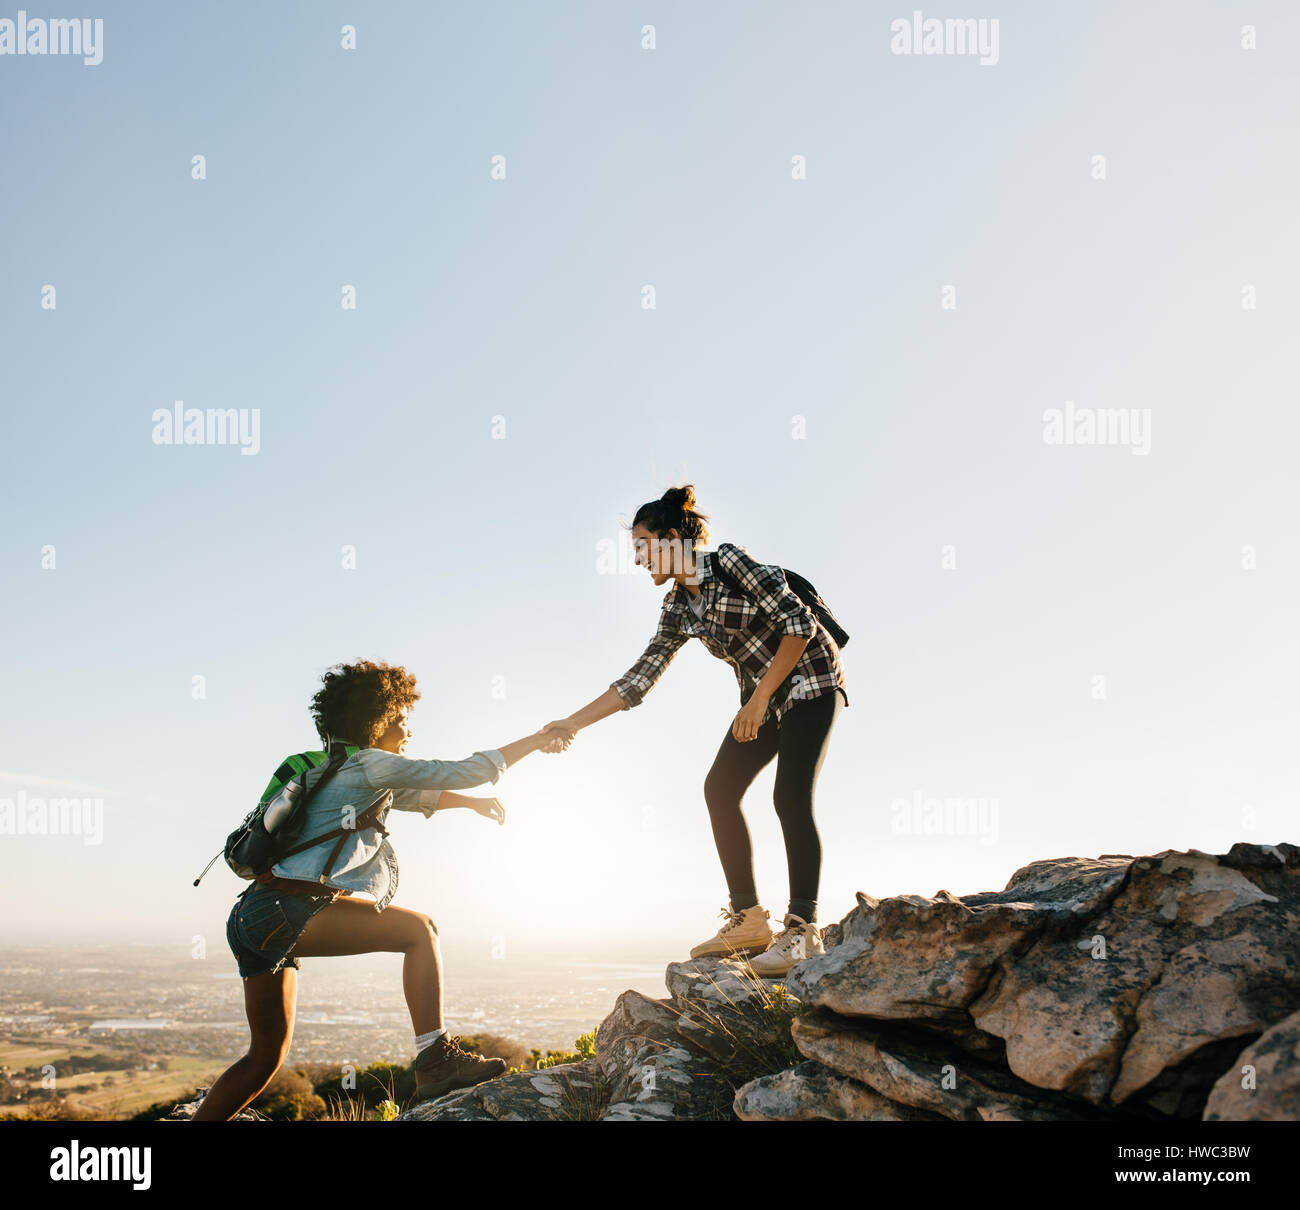 Helping Each Other: Female Friends Hiking Help Each Other In Mountains. Young